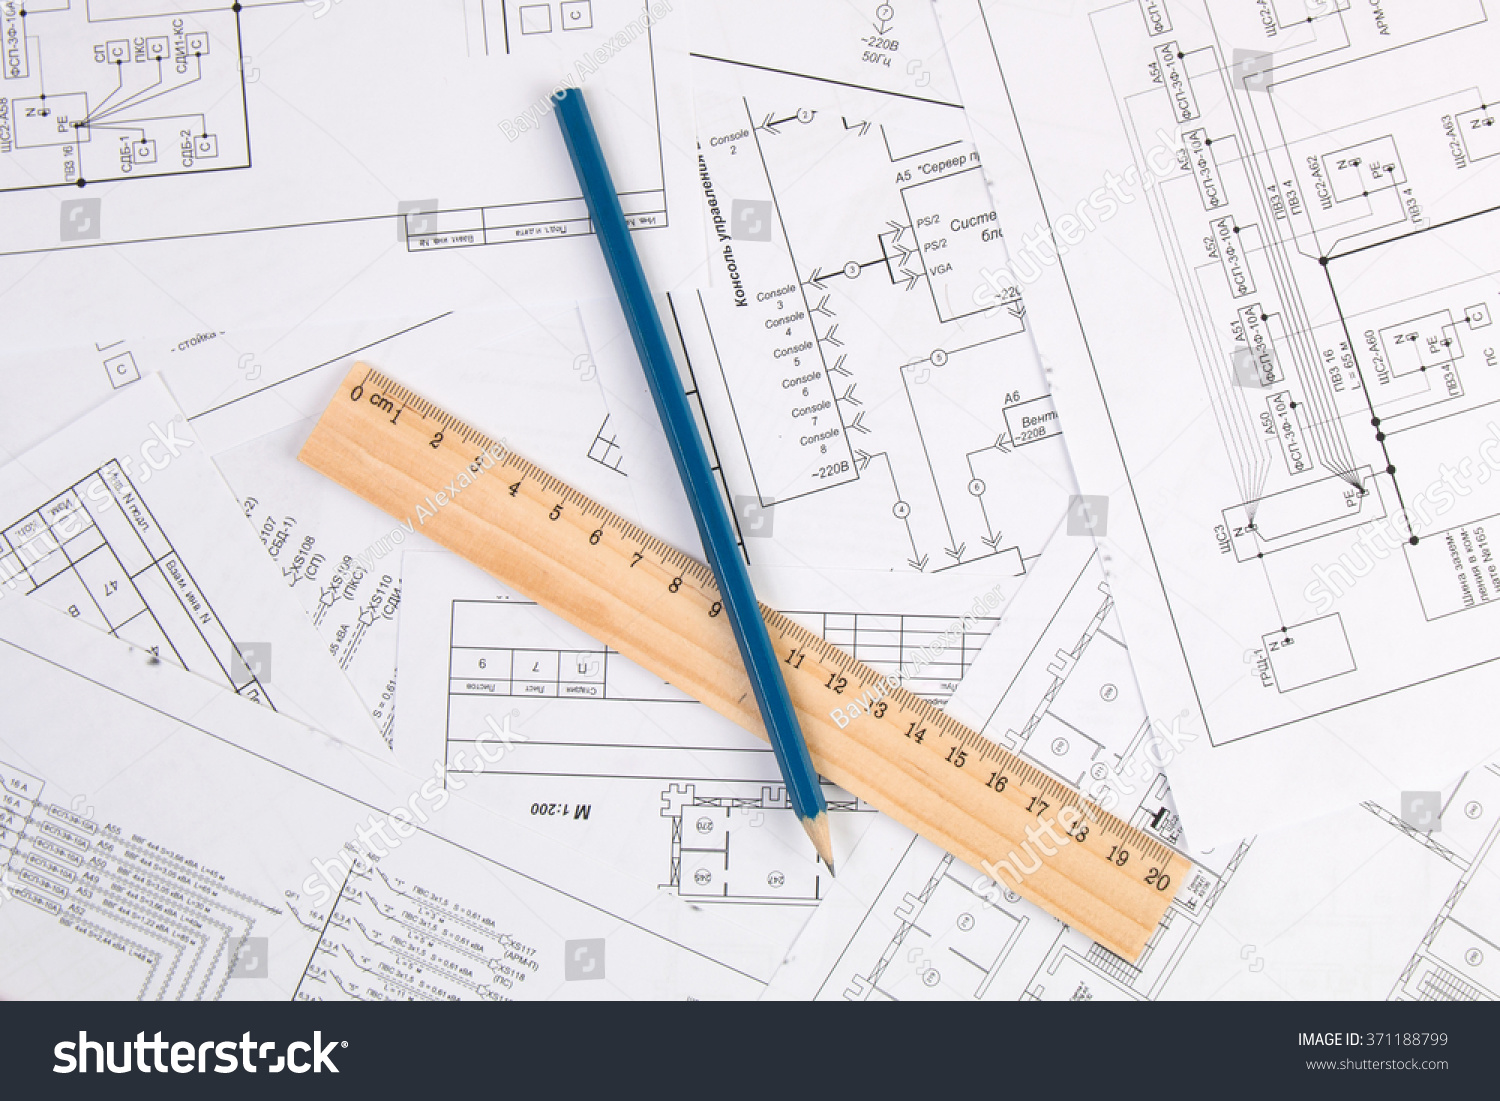 Royalty Free Electrical Engineering Drawings 371188799 Stock Photo E Plan Printing Pencil And Ruler